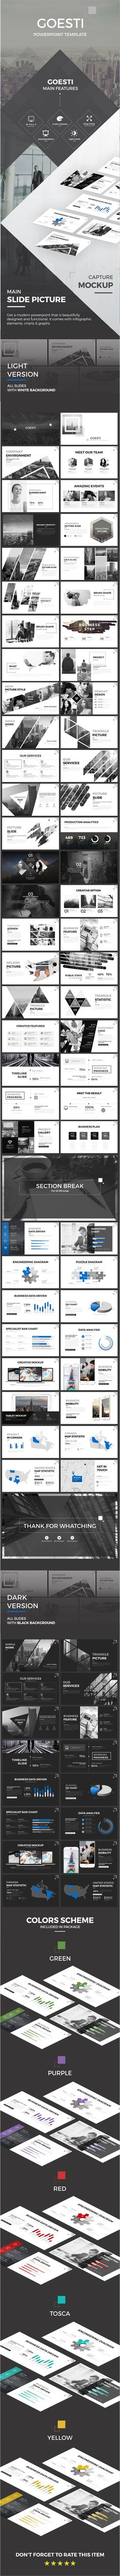 Goesti PowerPoint Template  #maps #tech • Download ➝ https://graphicriver.net/item/goesti-powerpoint-template/18660630?ref=pxcr